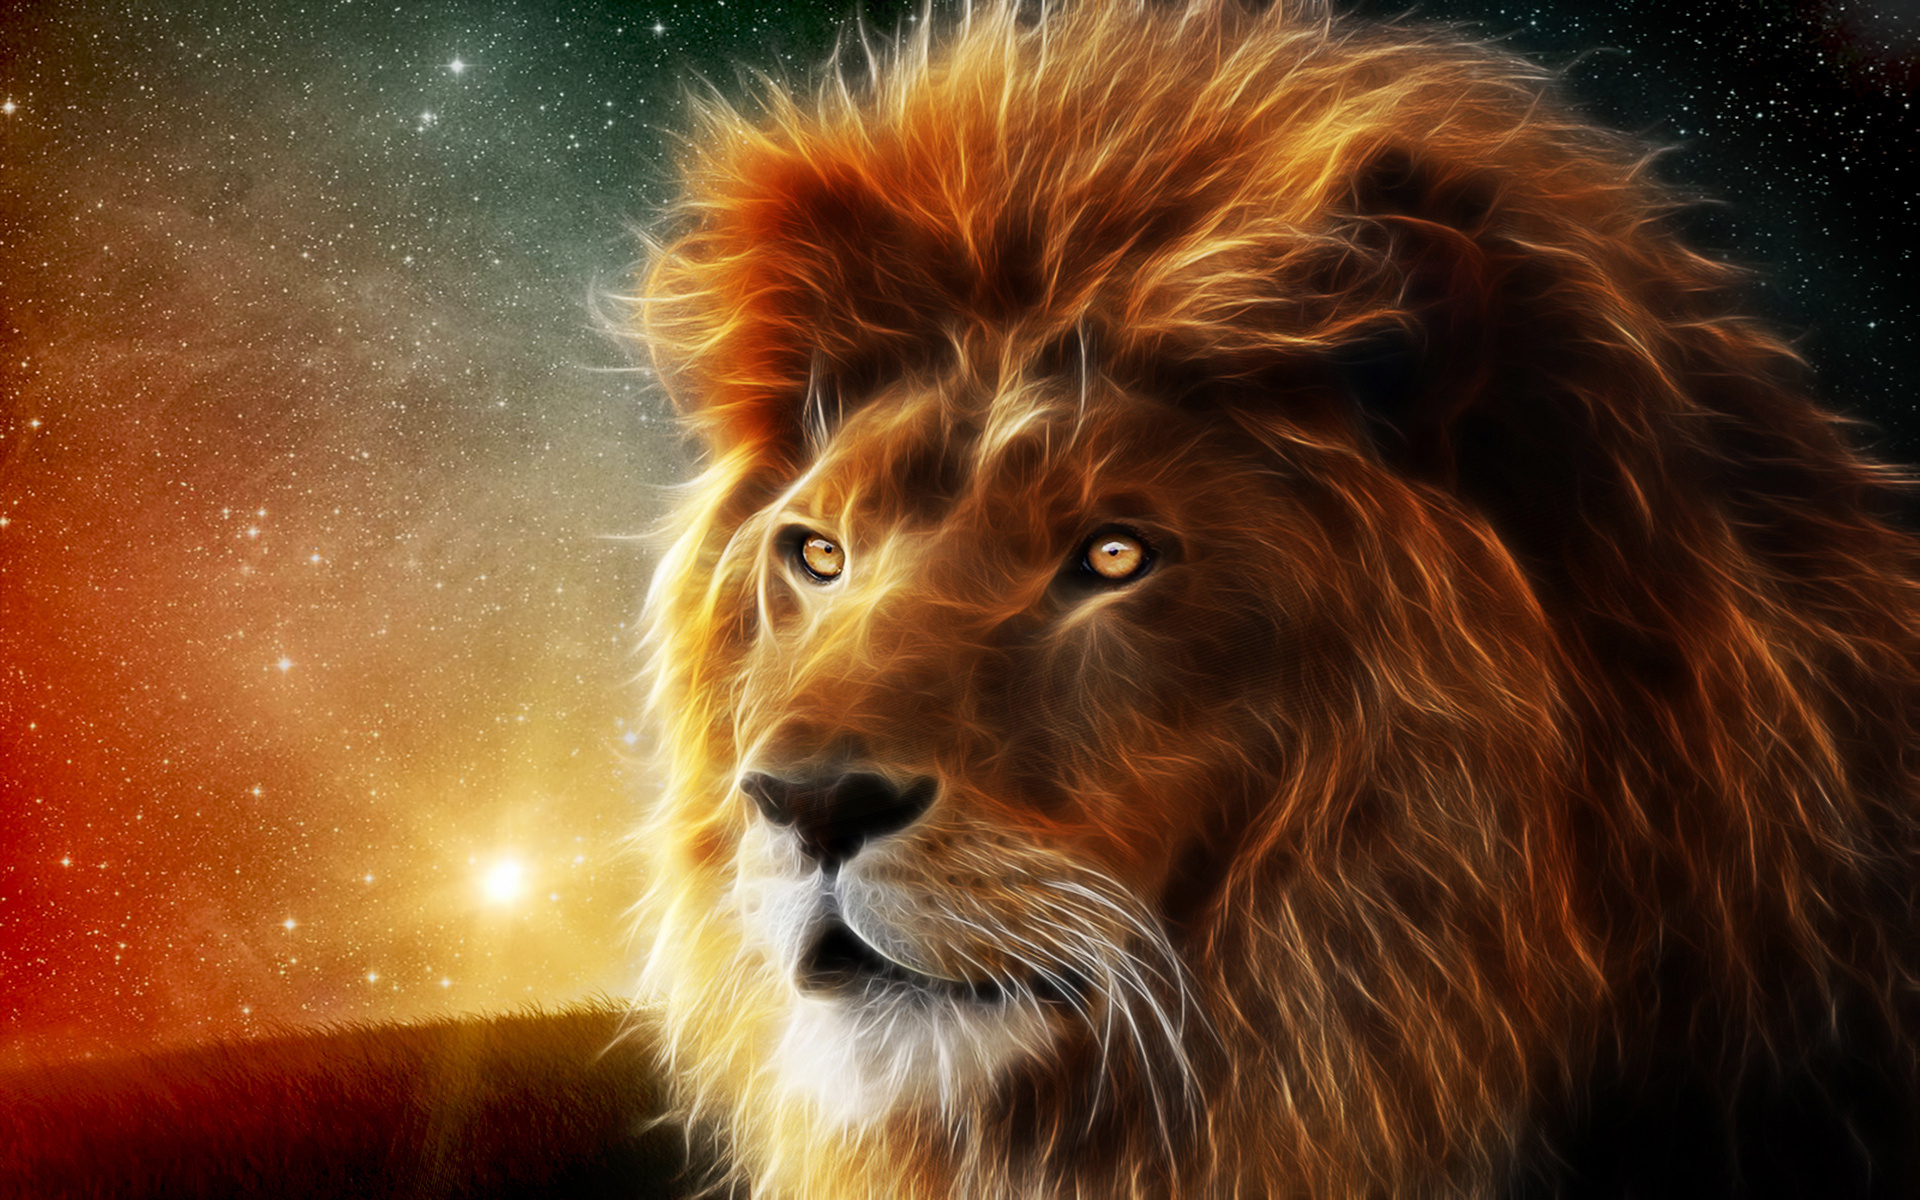 abstract 3d lion image